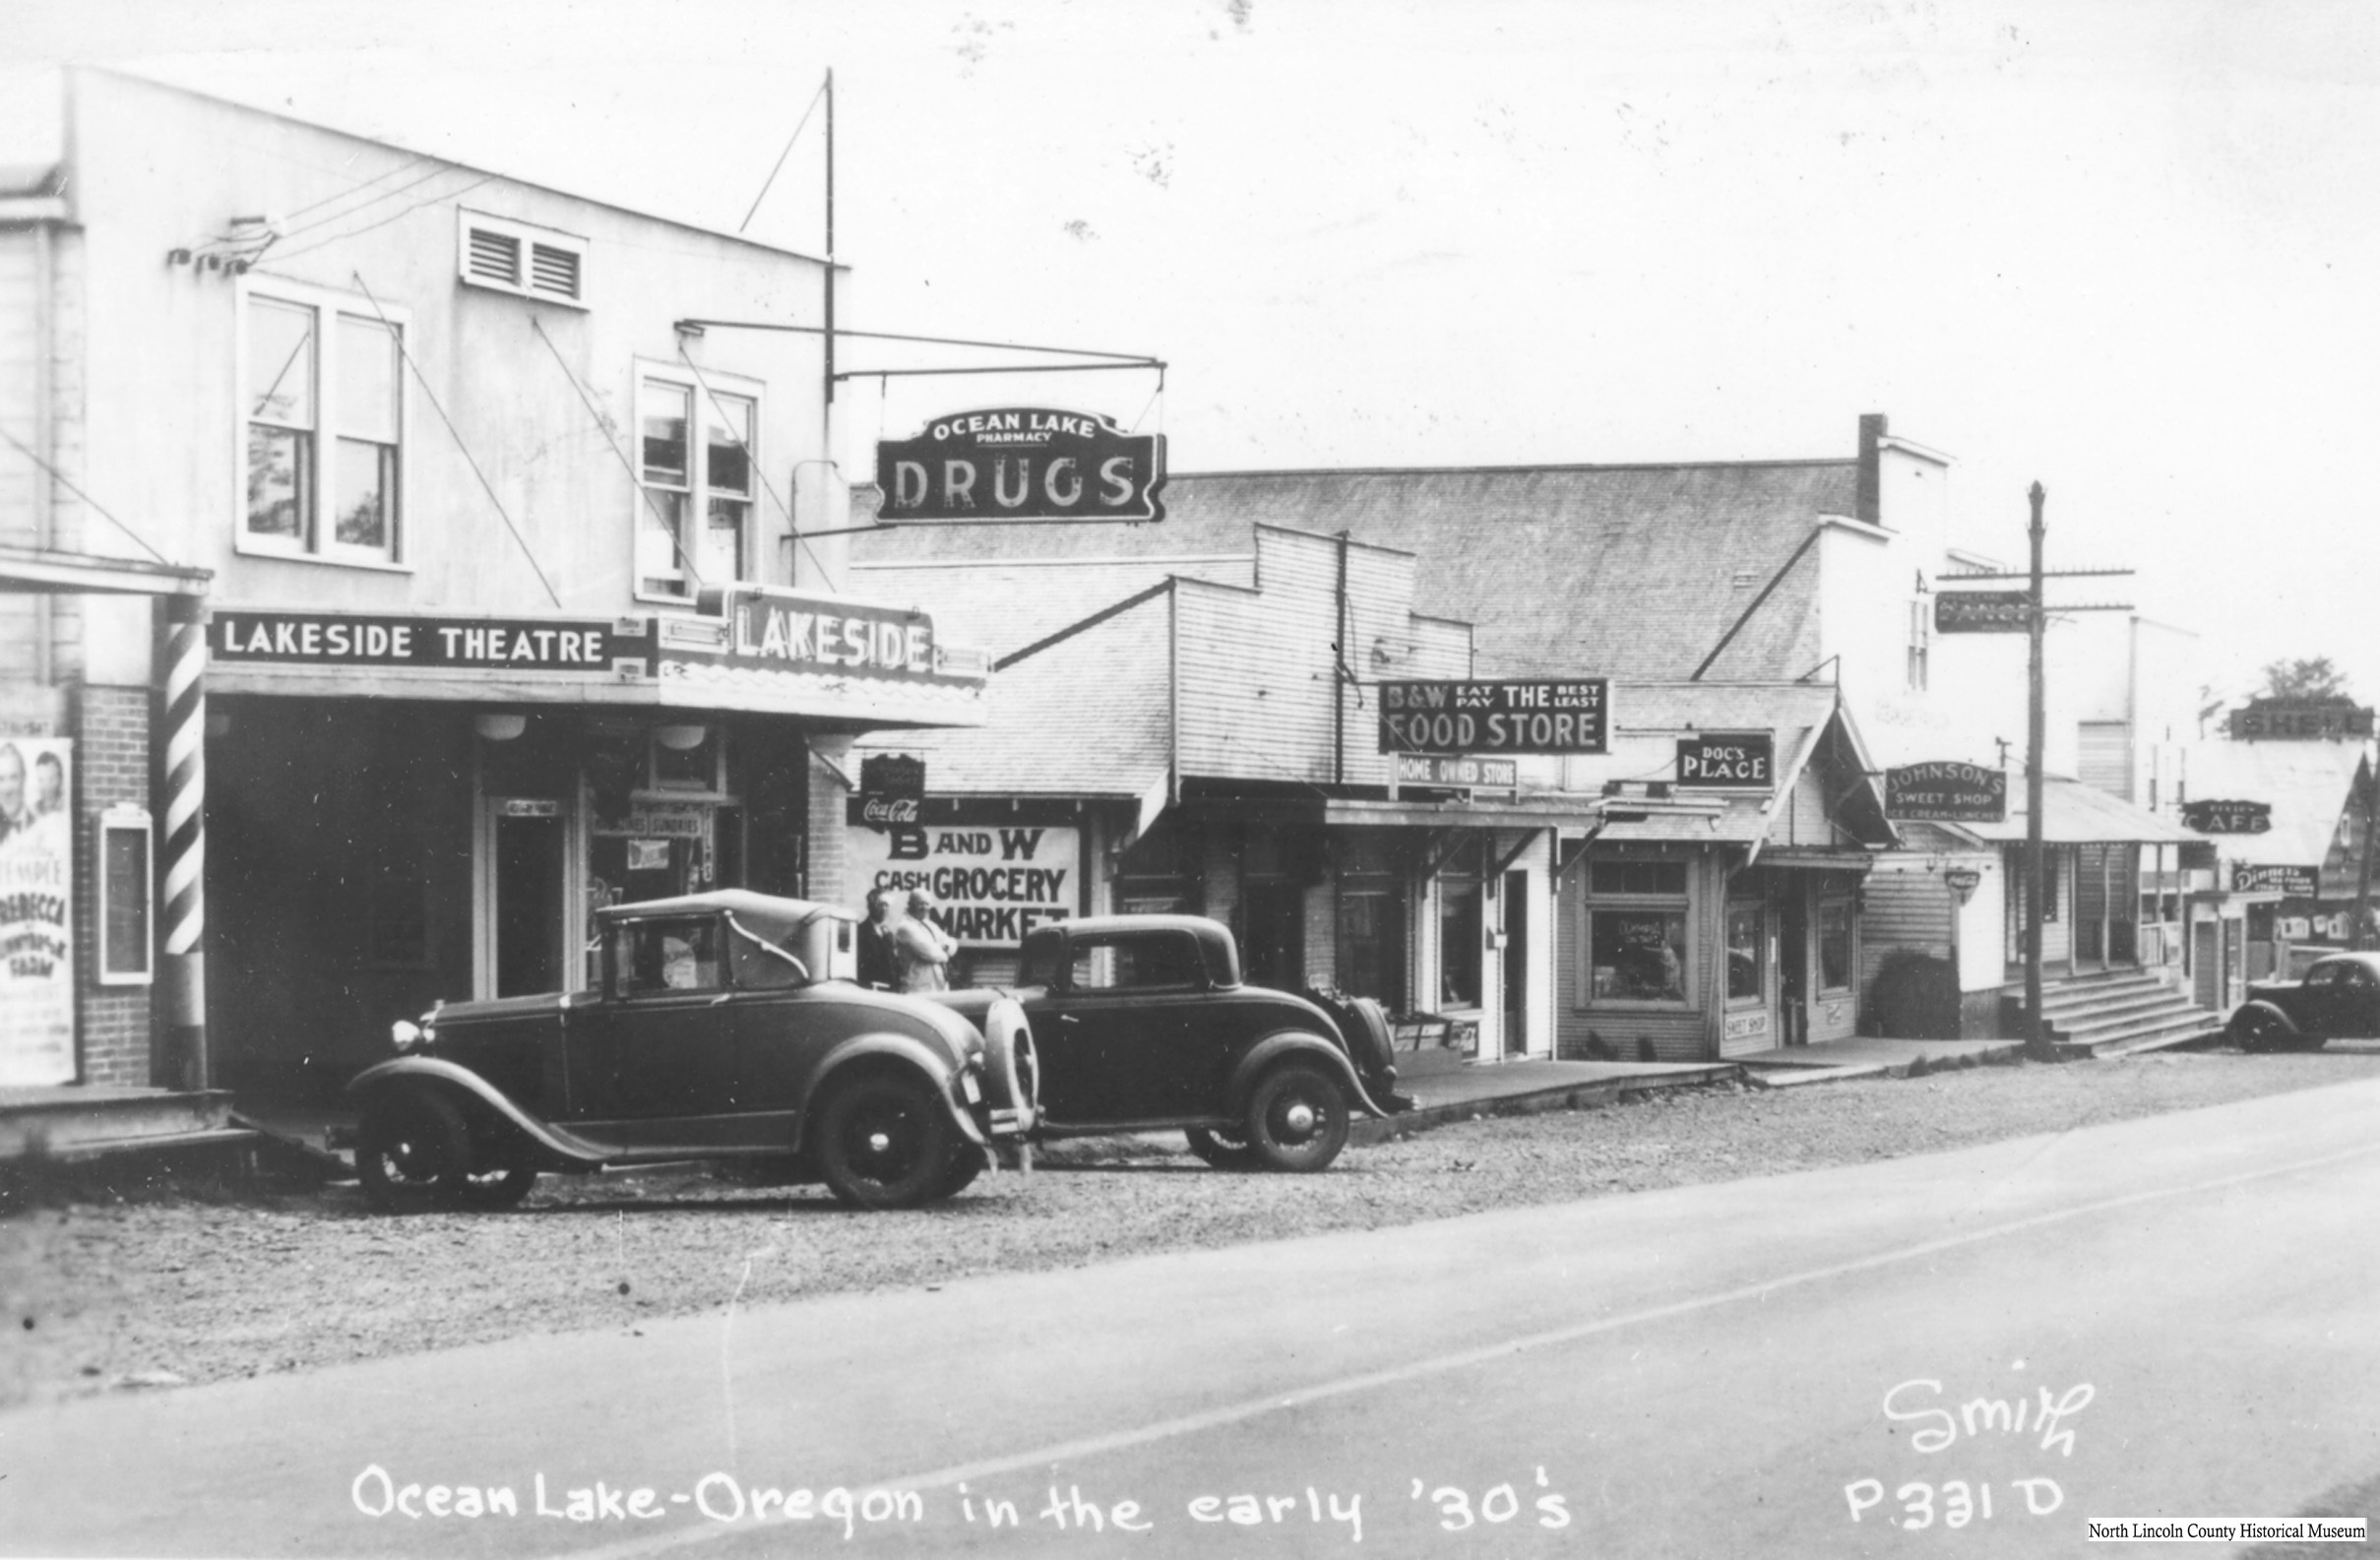 Lakeside Theatre, now the Bijou, in Oceanlake, early 1930sWM